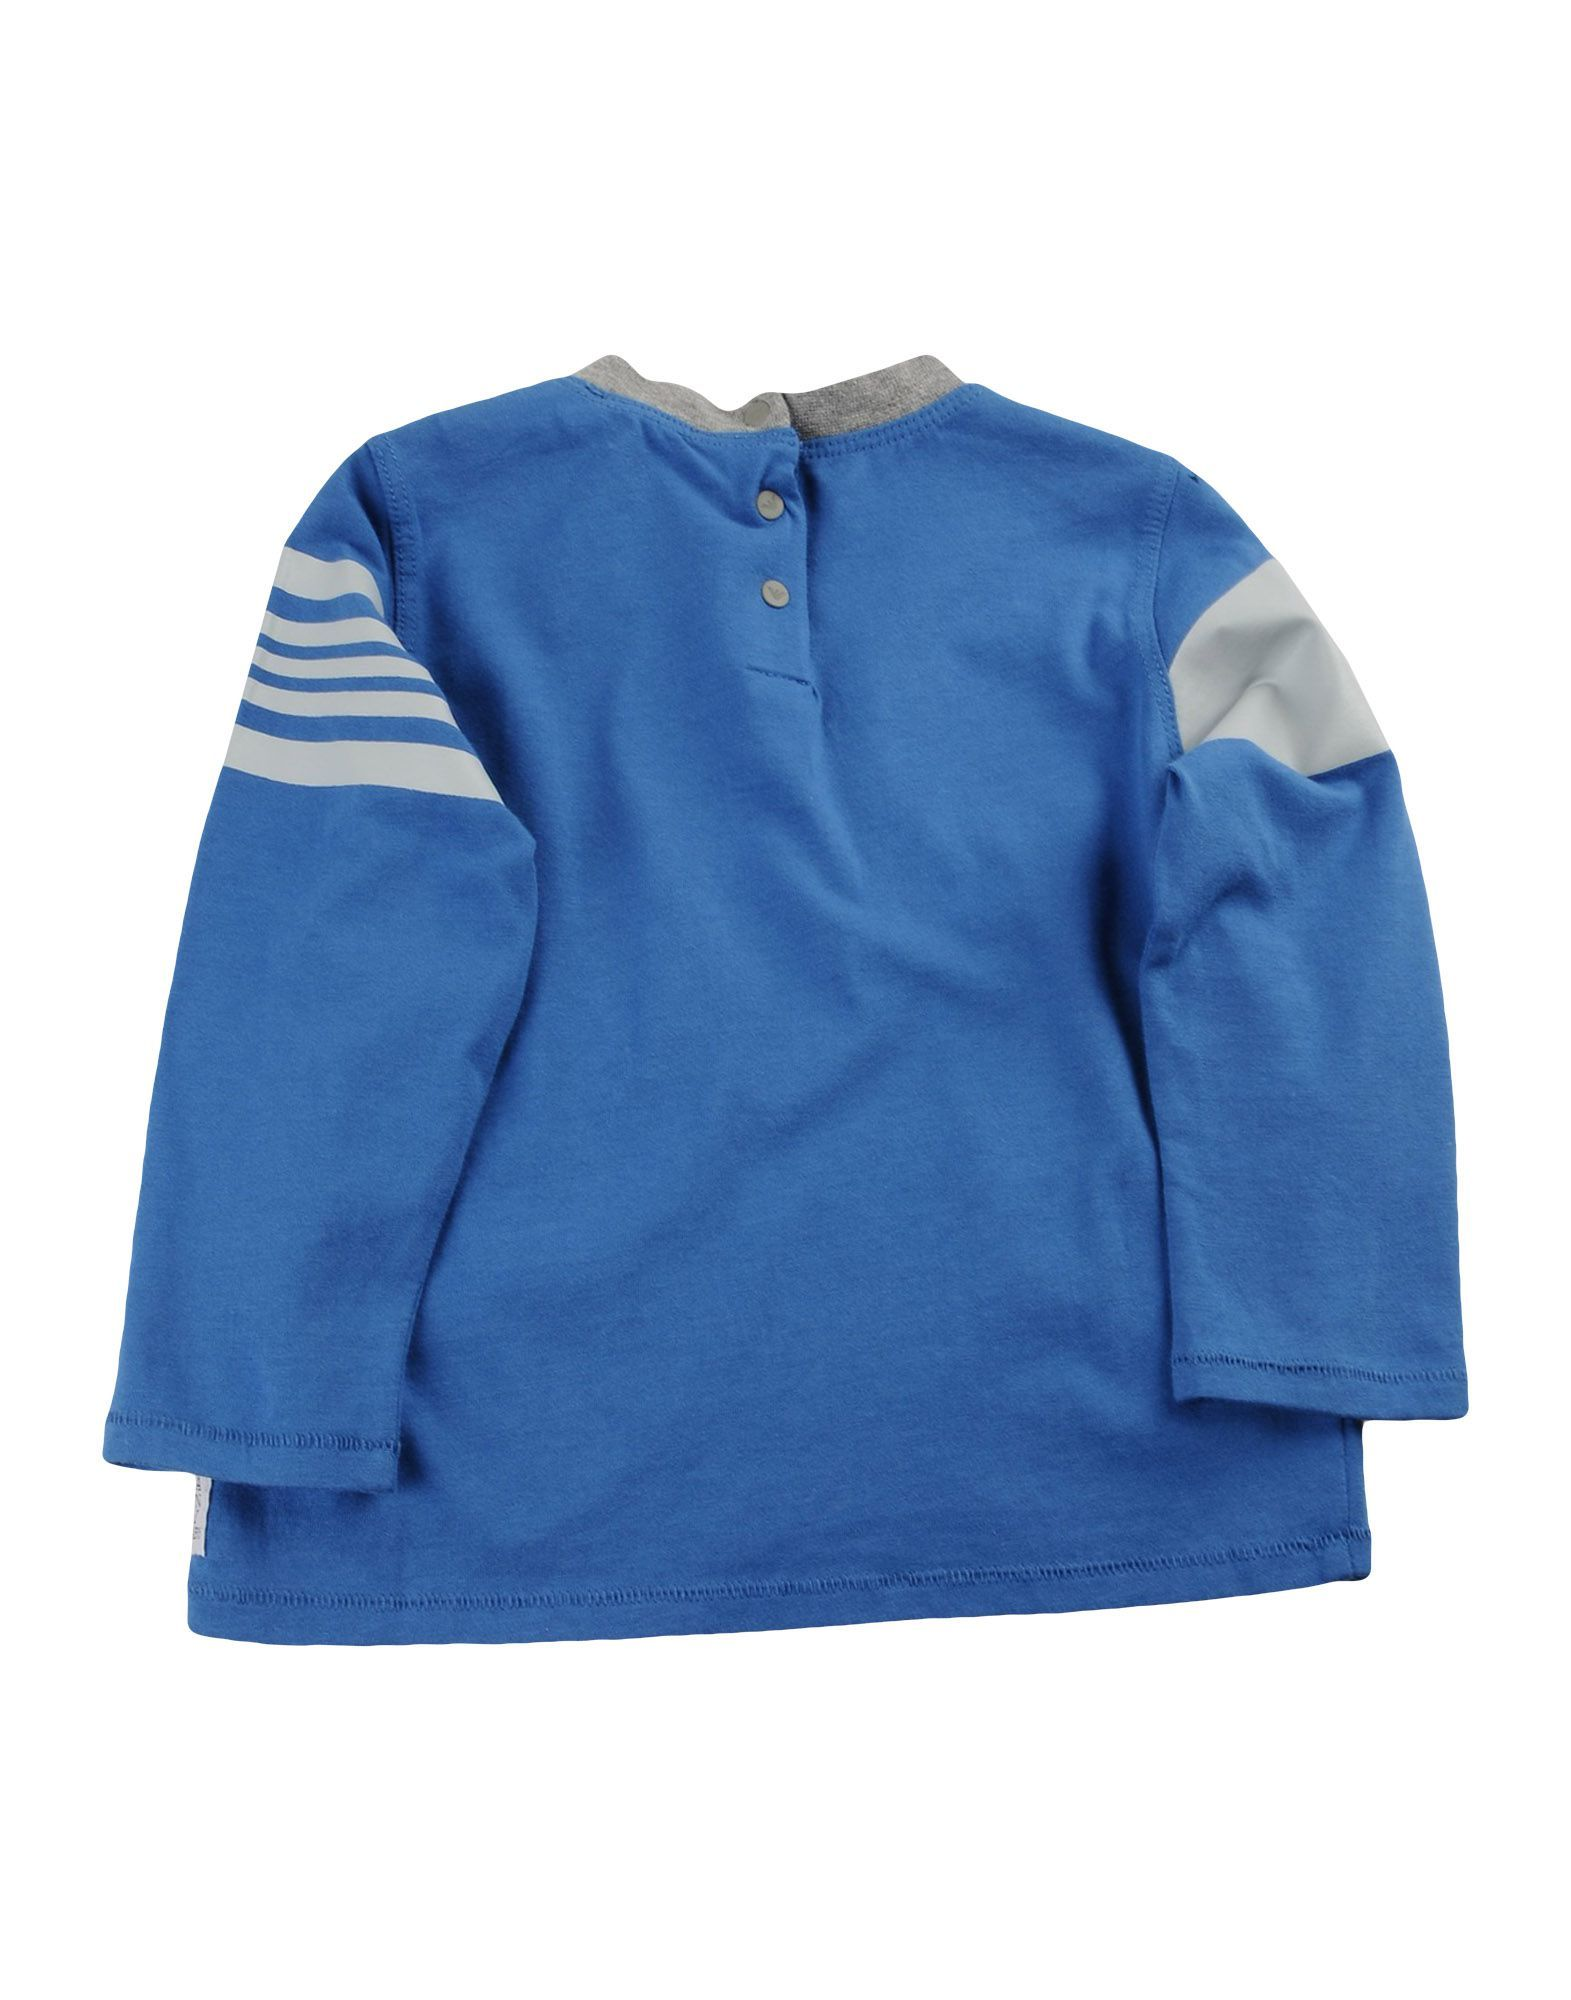 TOPWEAR Armani Junior Azure Boy Cotton